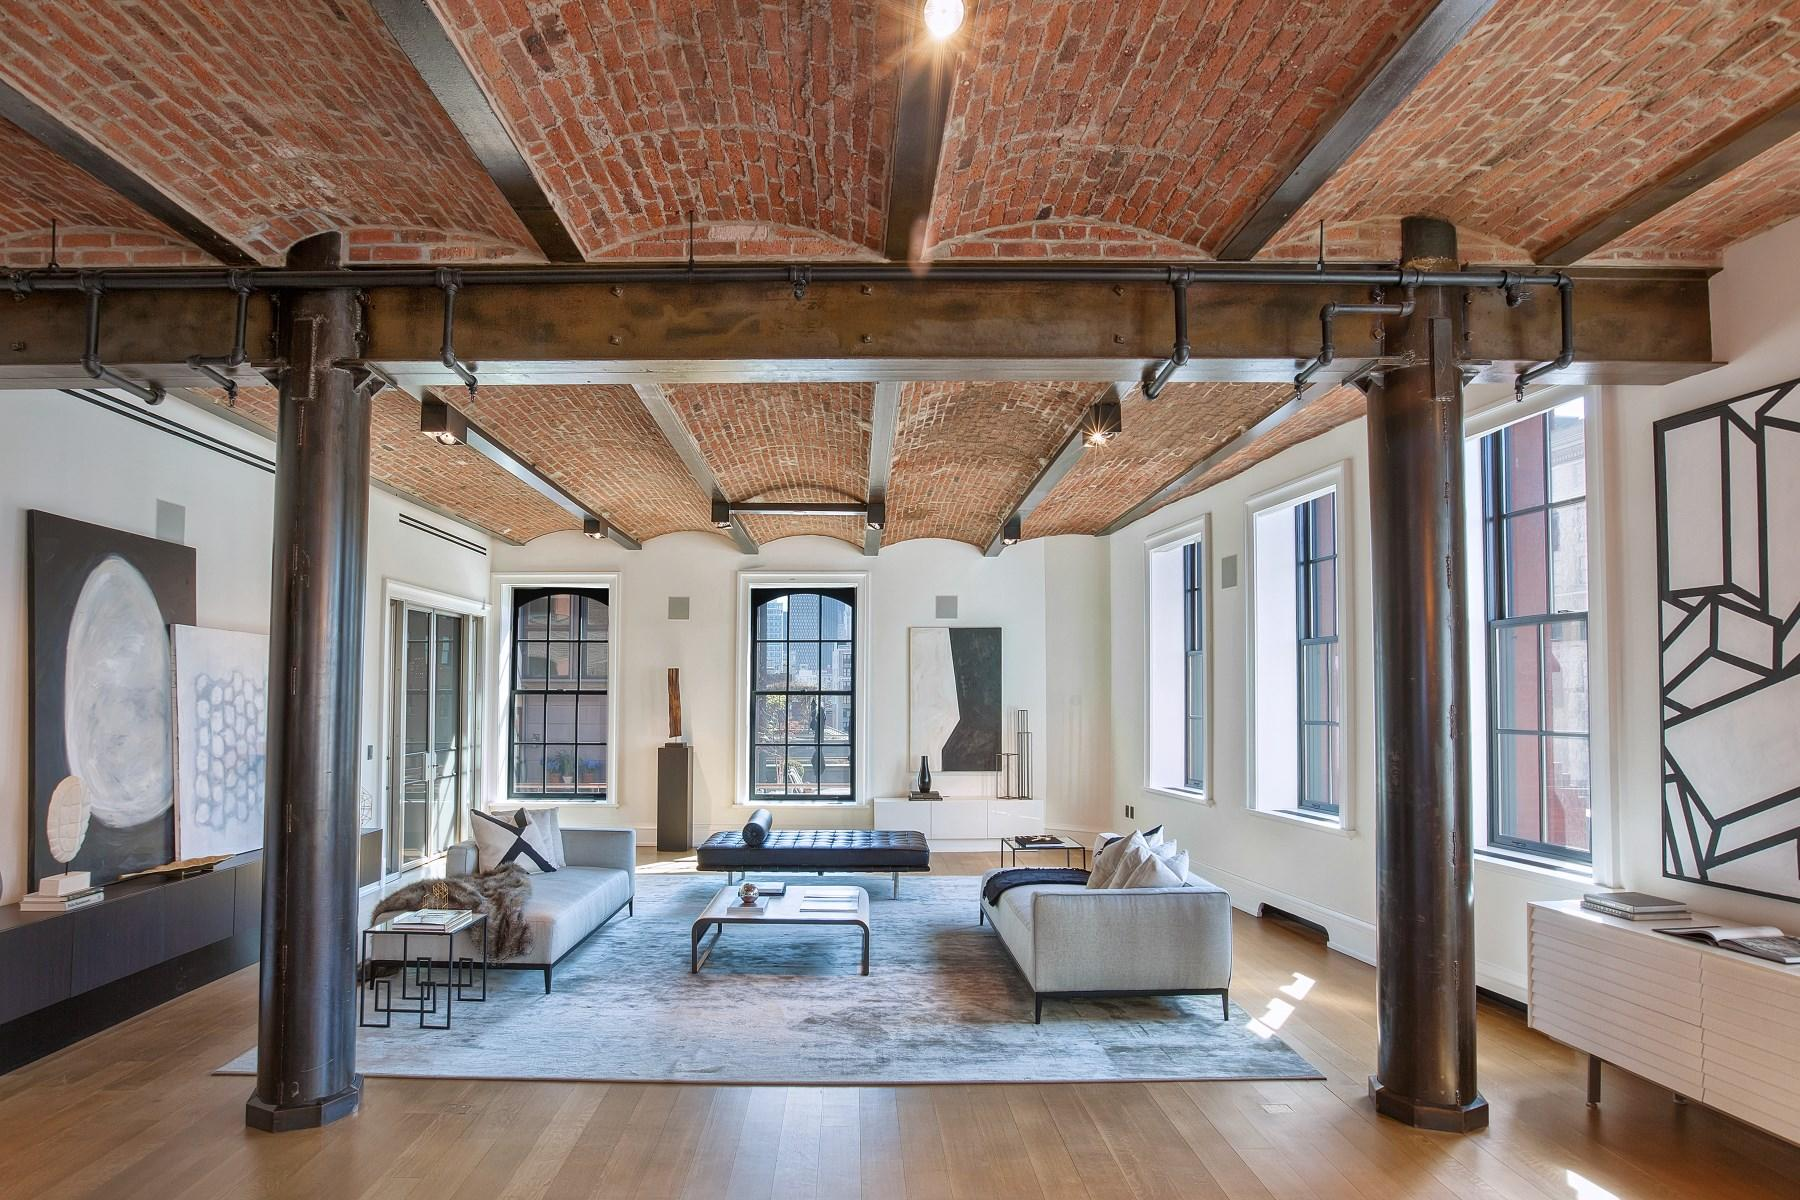 House of the Day: 19th-Century NYC Industrial Building Turned Loft Asks $22M